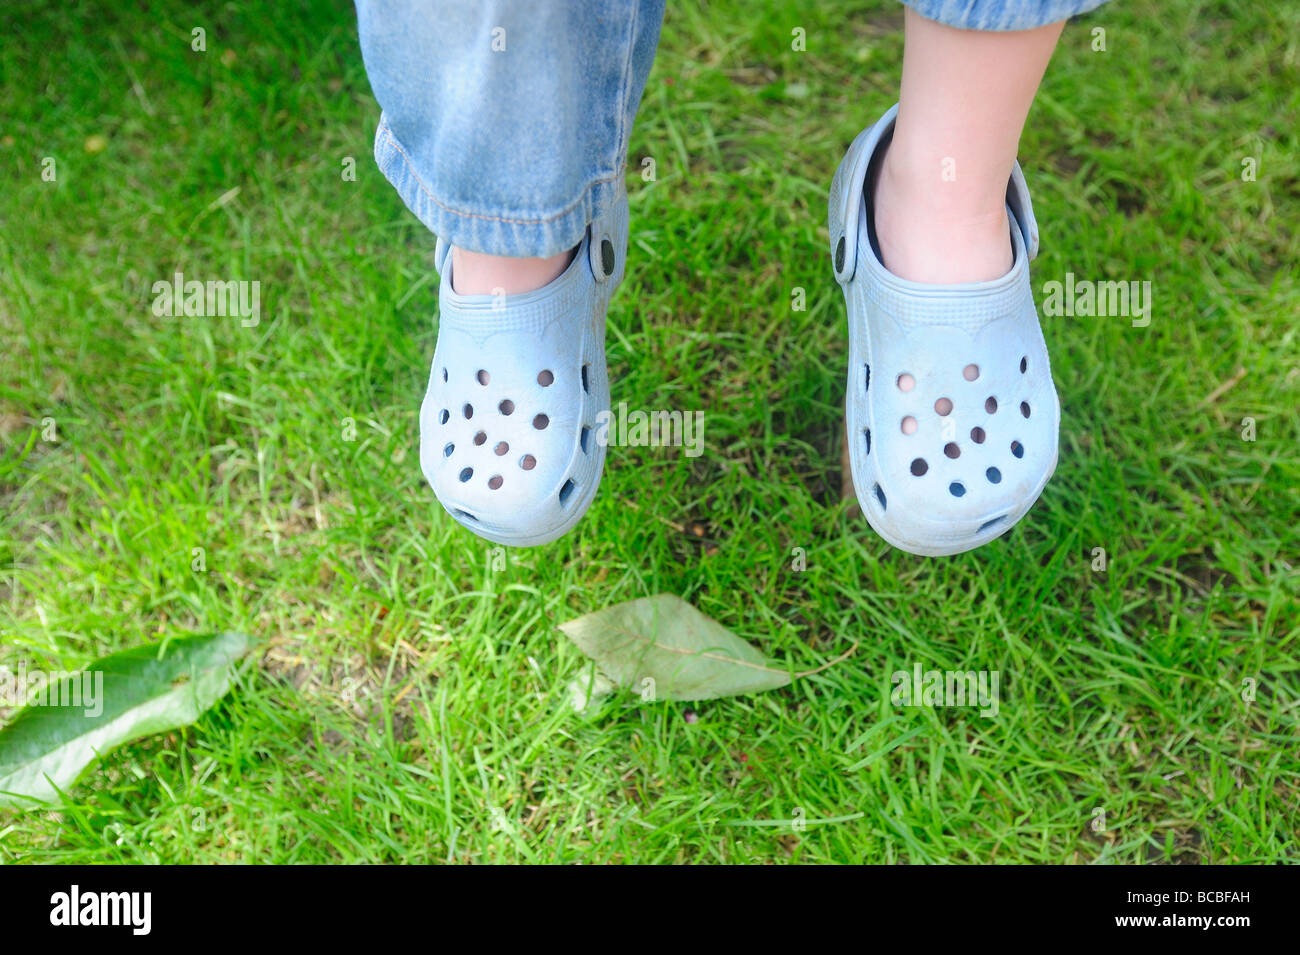 0e46dc5c54bd Crocs Feet Stock Photos   Crocs Feet Stock Images - Alamy